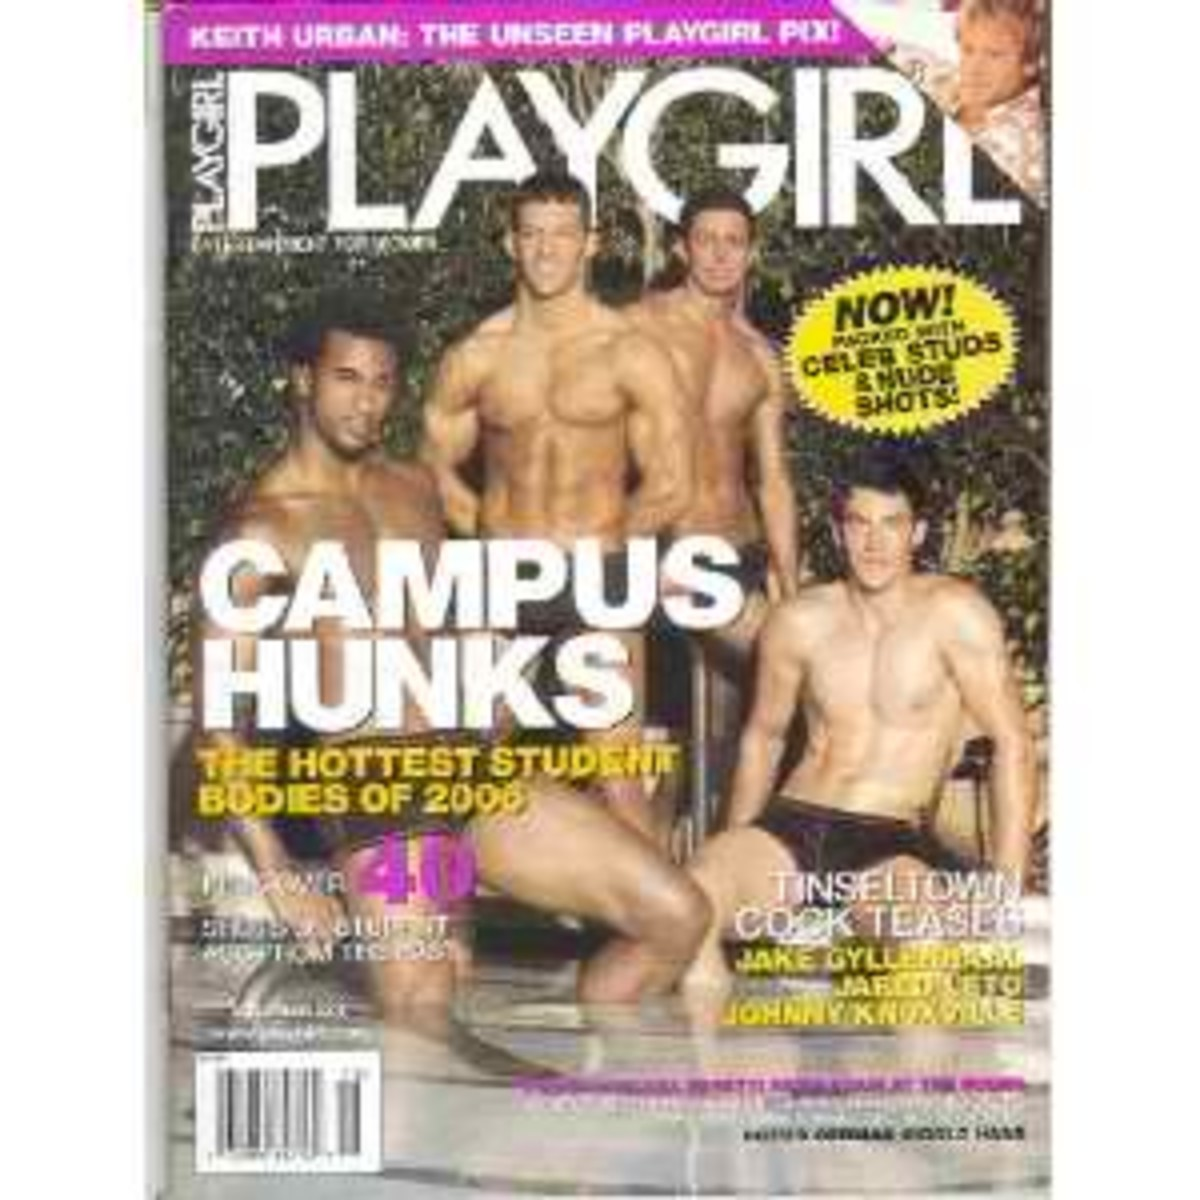 Boham lower right, was on the cover of this Playgirl when he was arrested near the Arizona/Mexico Boarder in November of 2006